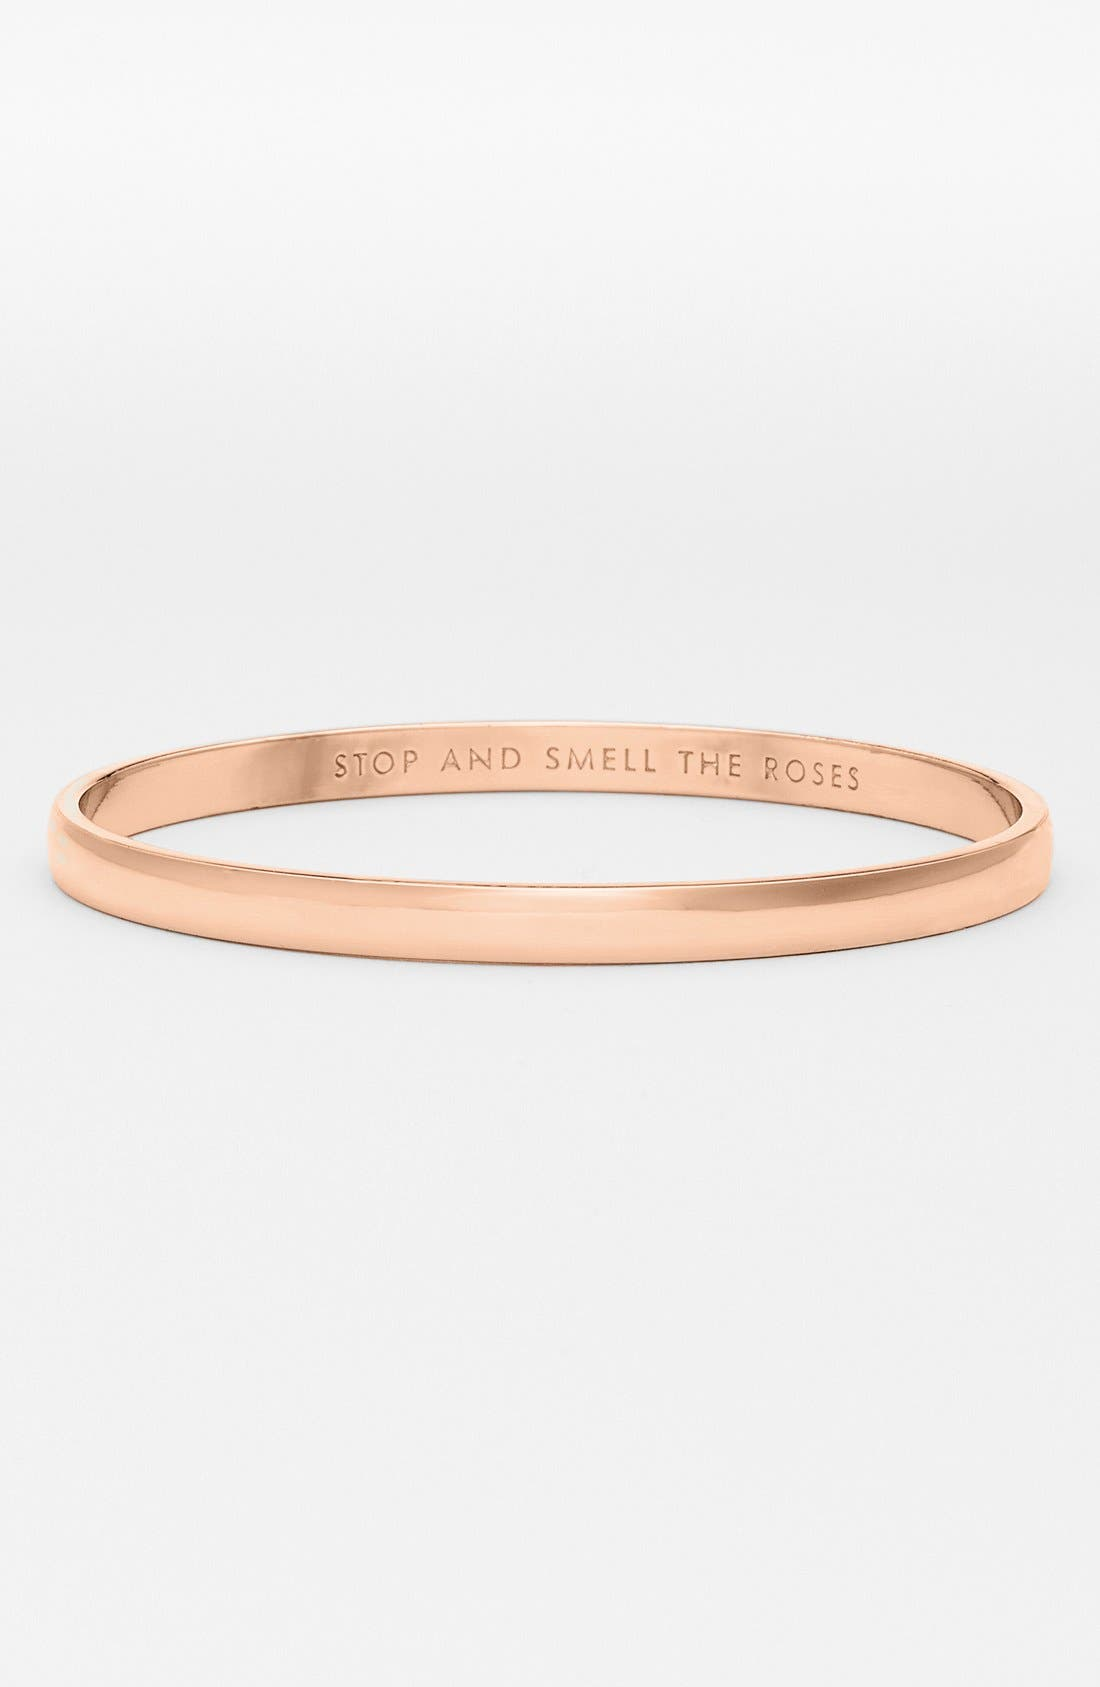 'idiom - stop and smell the roses' bangle,                         Main,                         color, Rose Gold